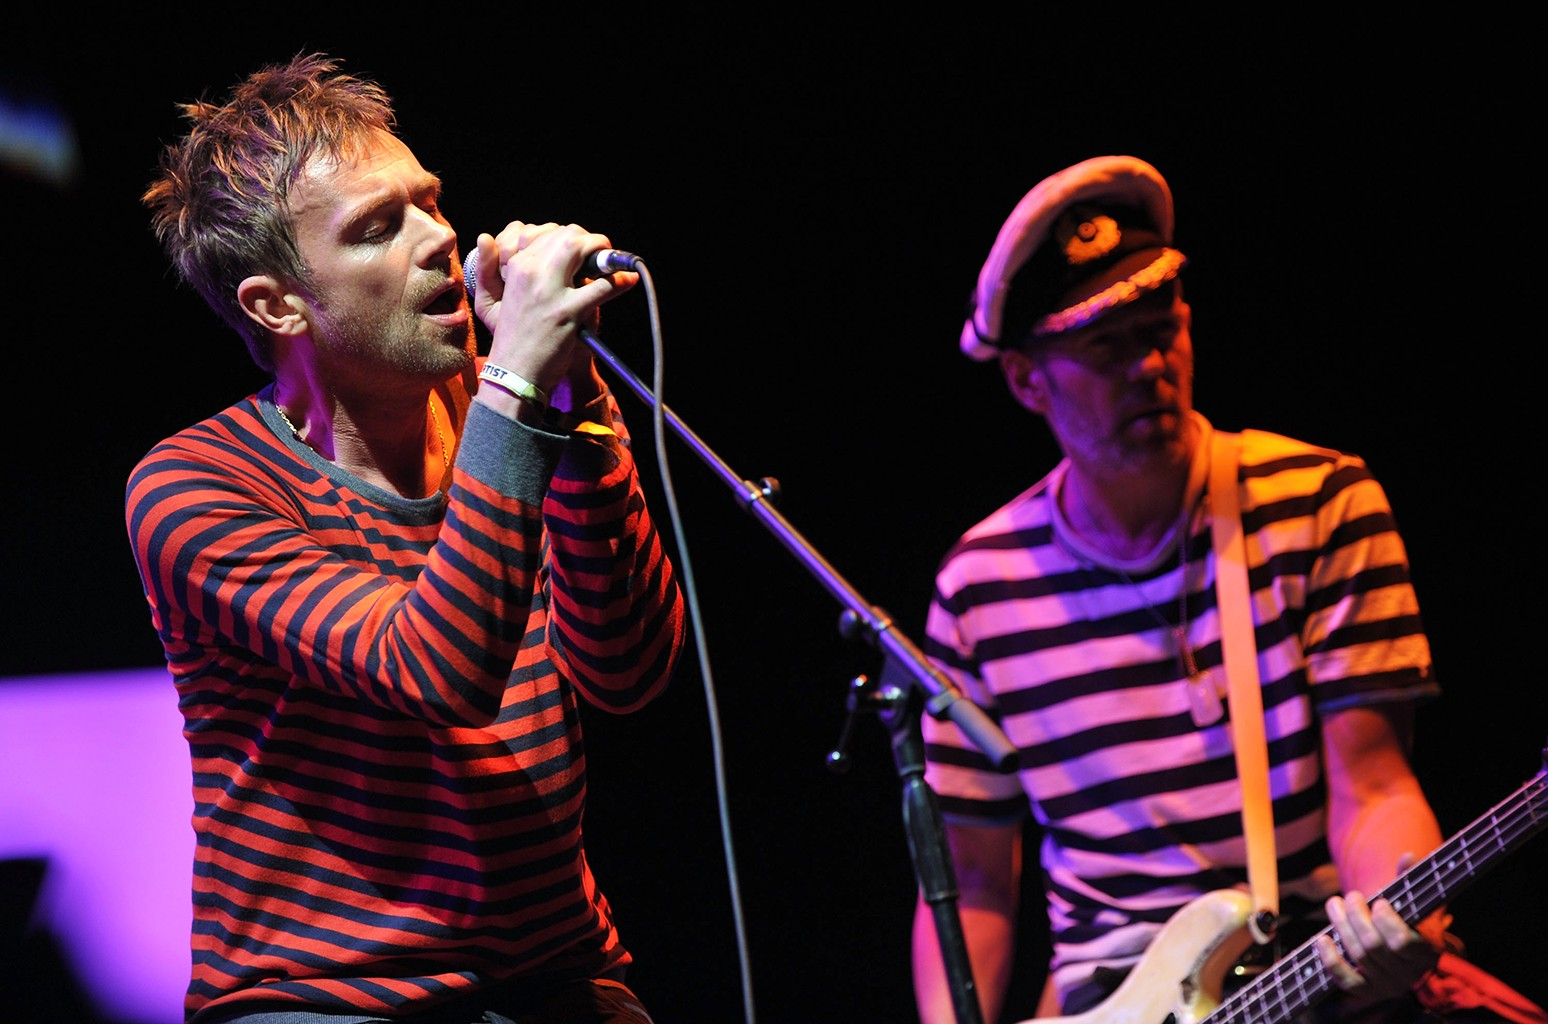 Gorillaz perform during the Coachella Valley Music & Art Festival 2010 held at the Empire Polo Club on April 18, 2010 in Indio, Calif.